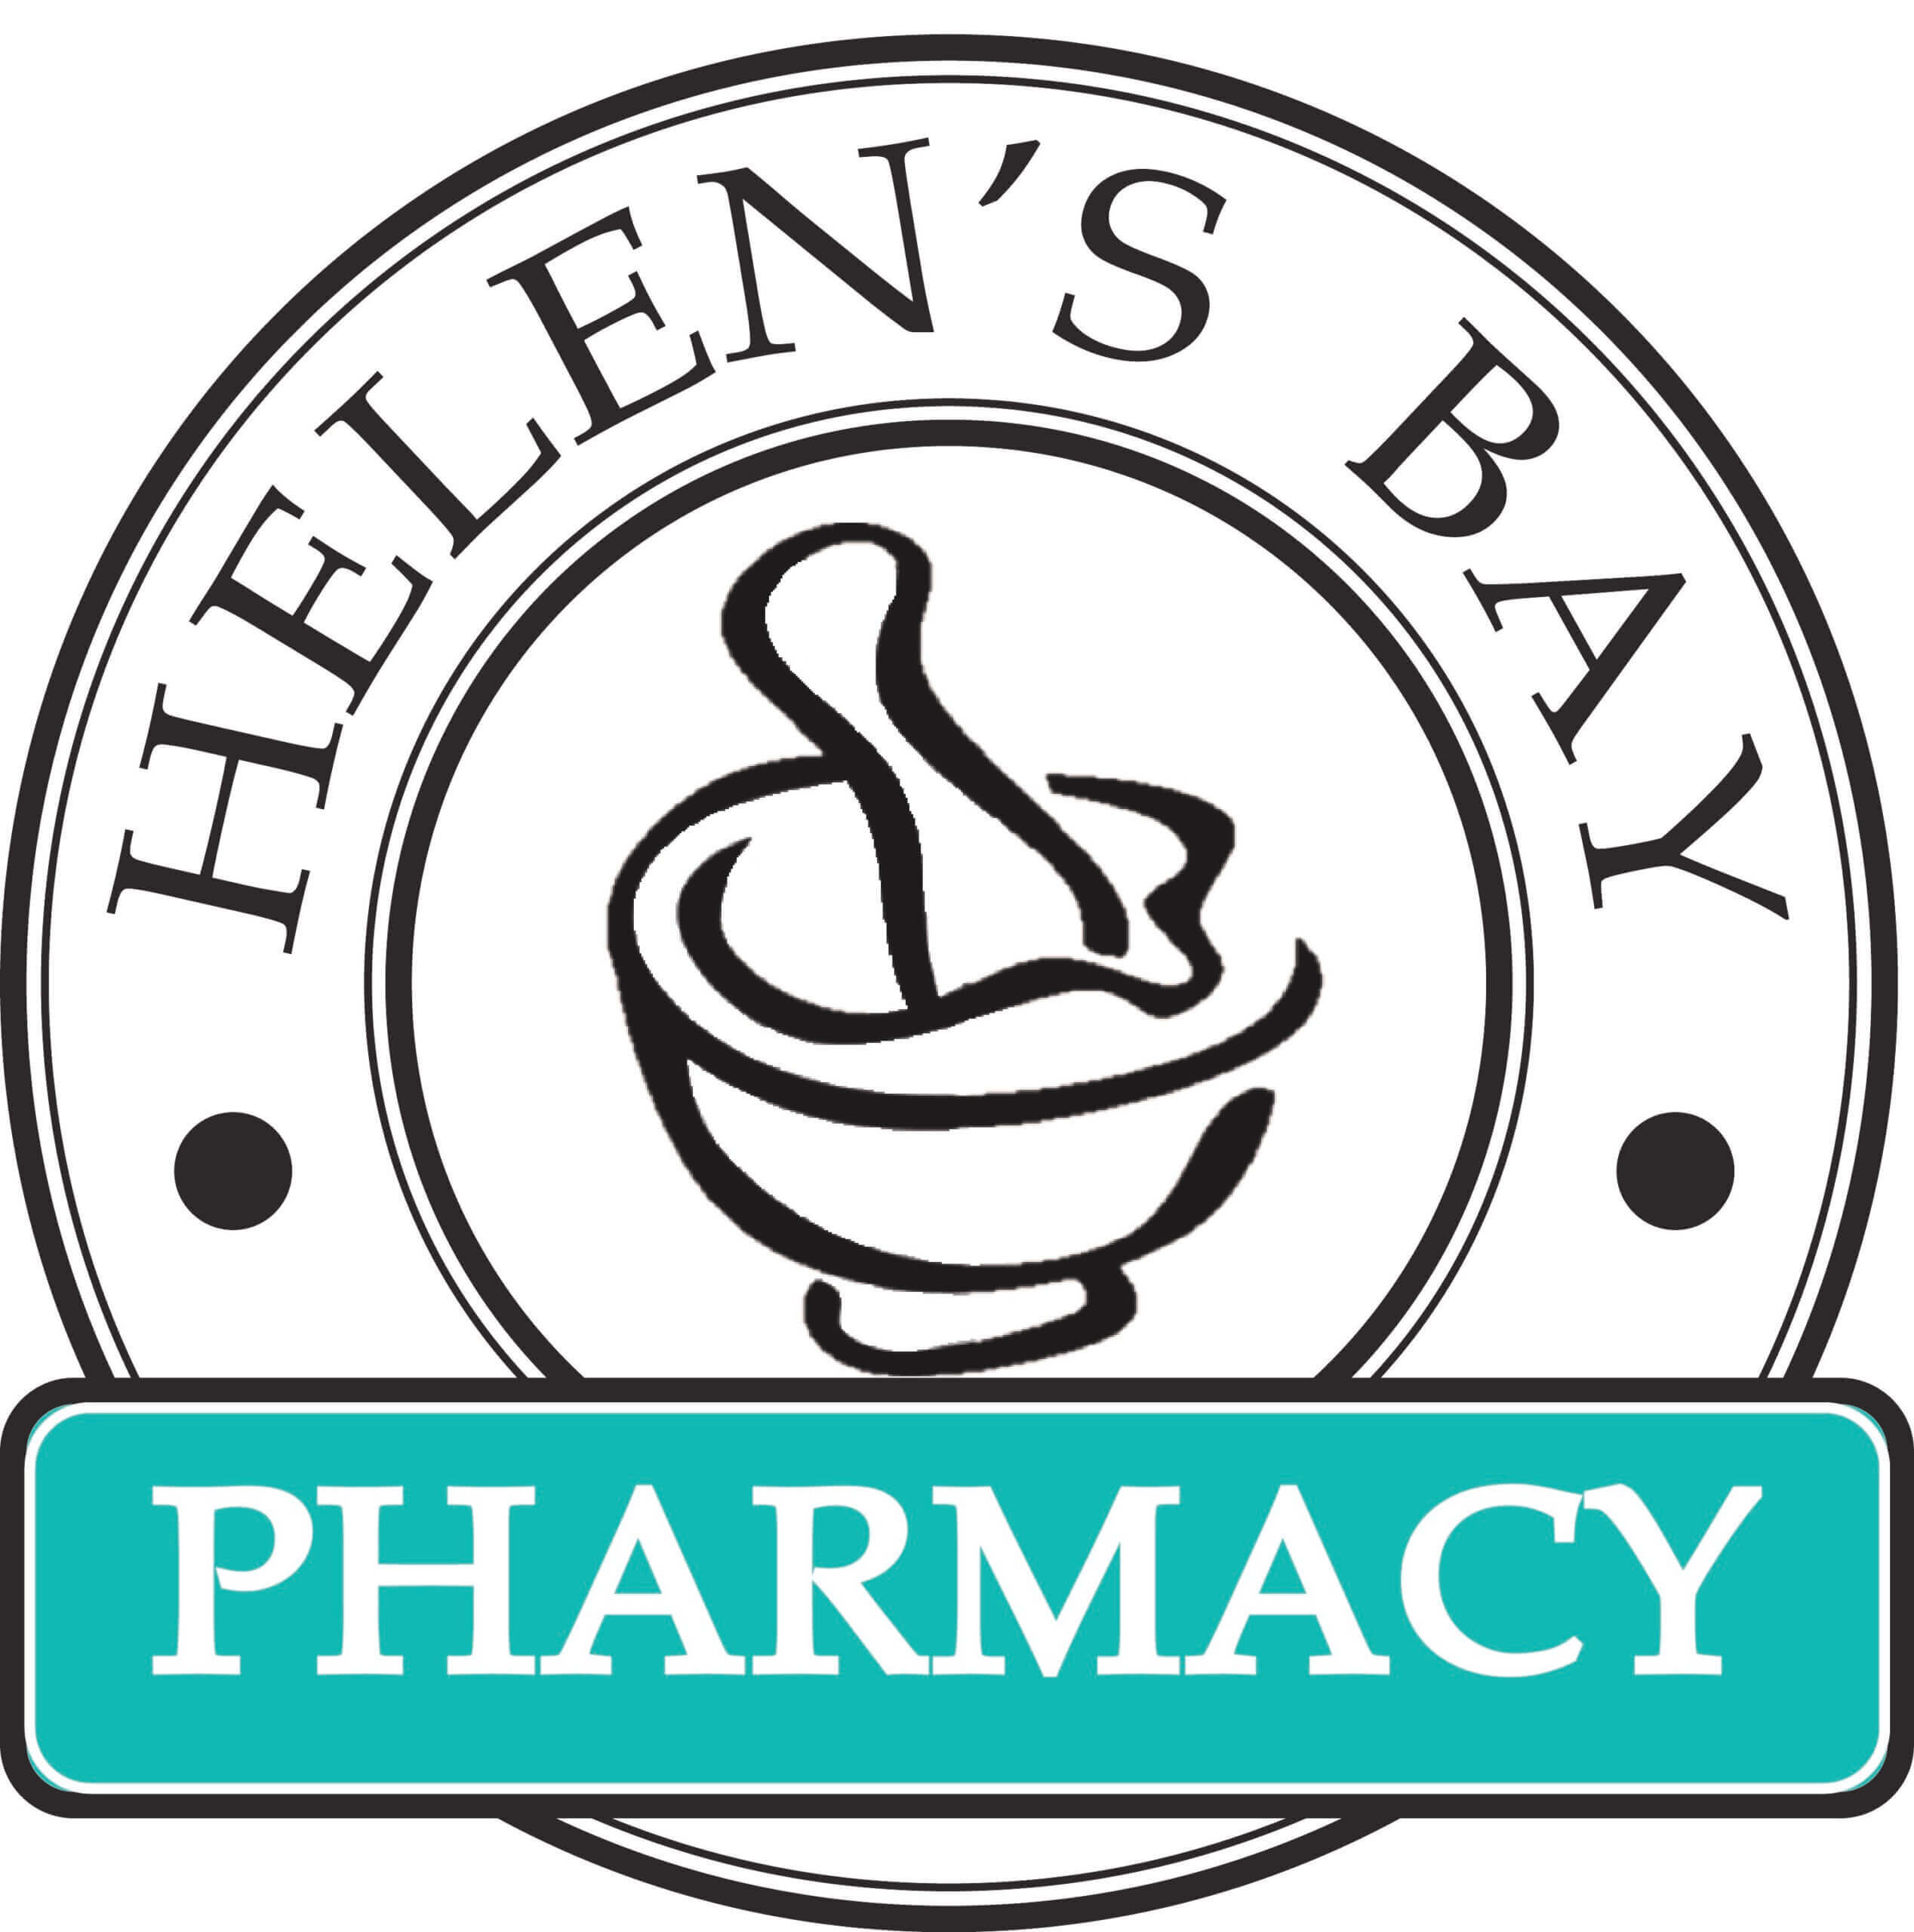 Helen's Bay Pharmacy